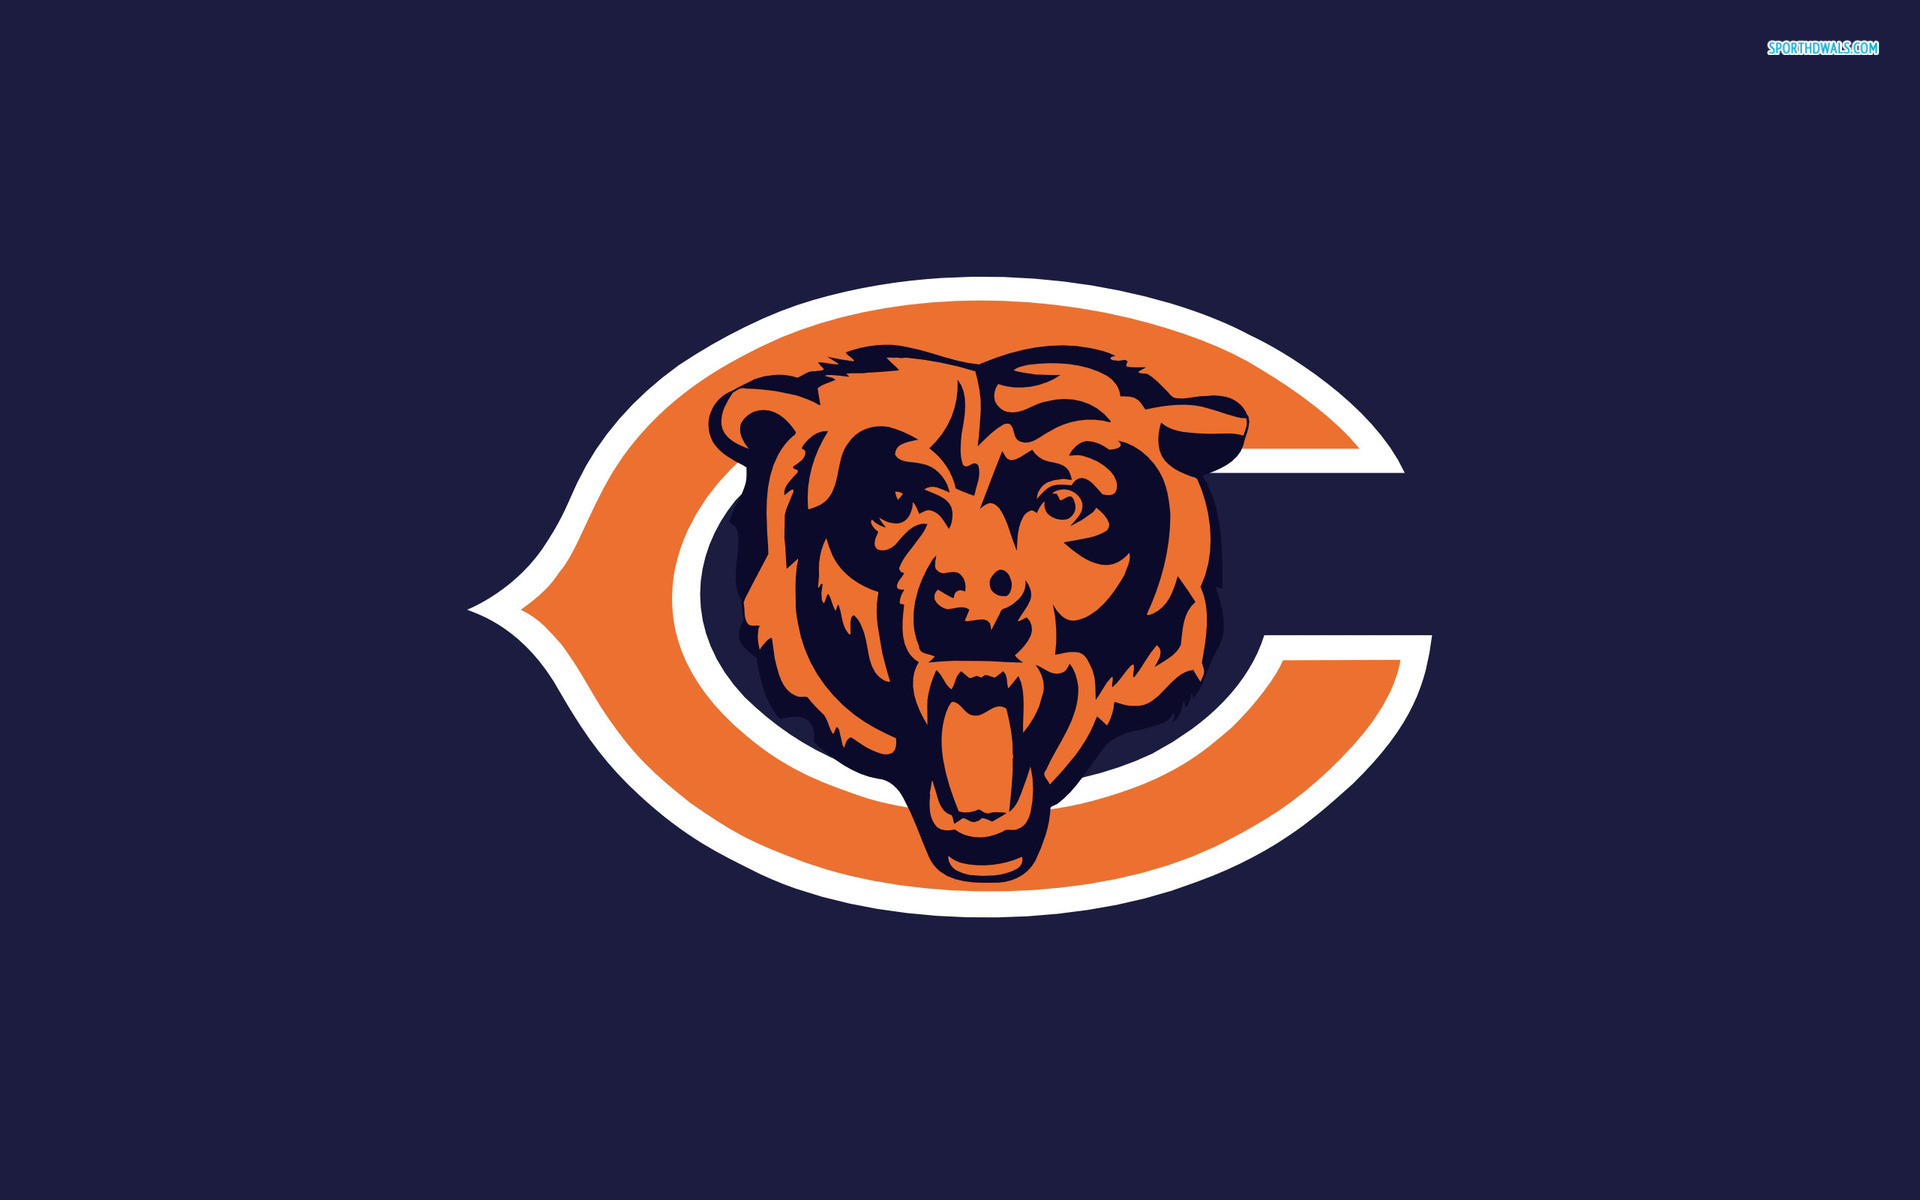 Chicago Bears wallpaper HD desktop wallpaper Chicago Bears 1920x1200